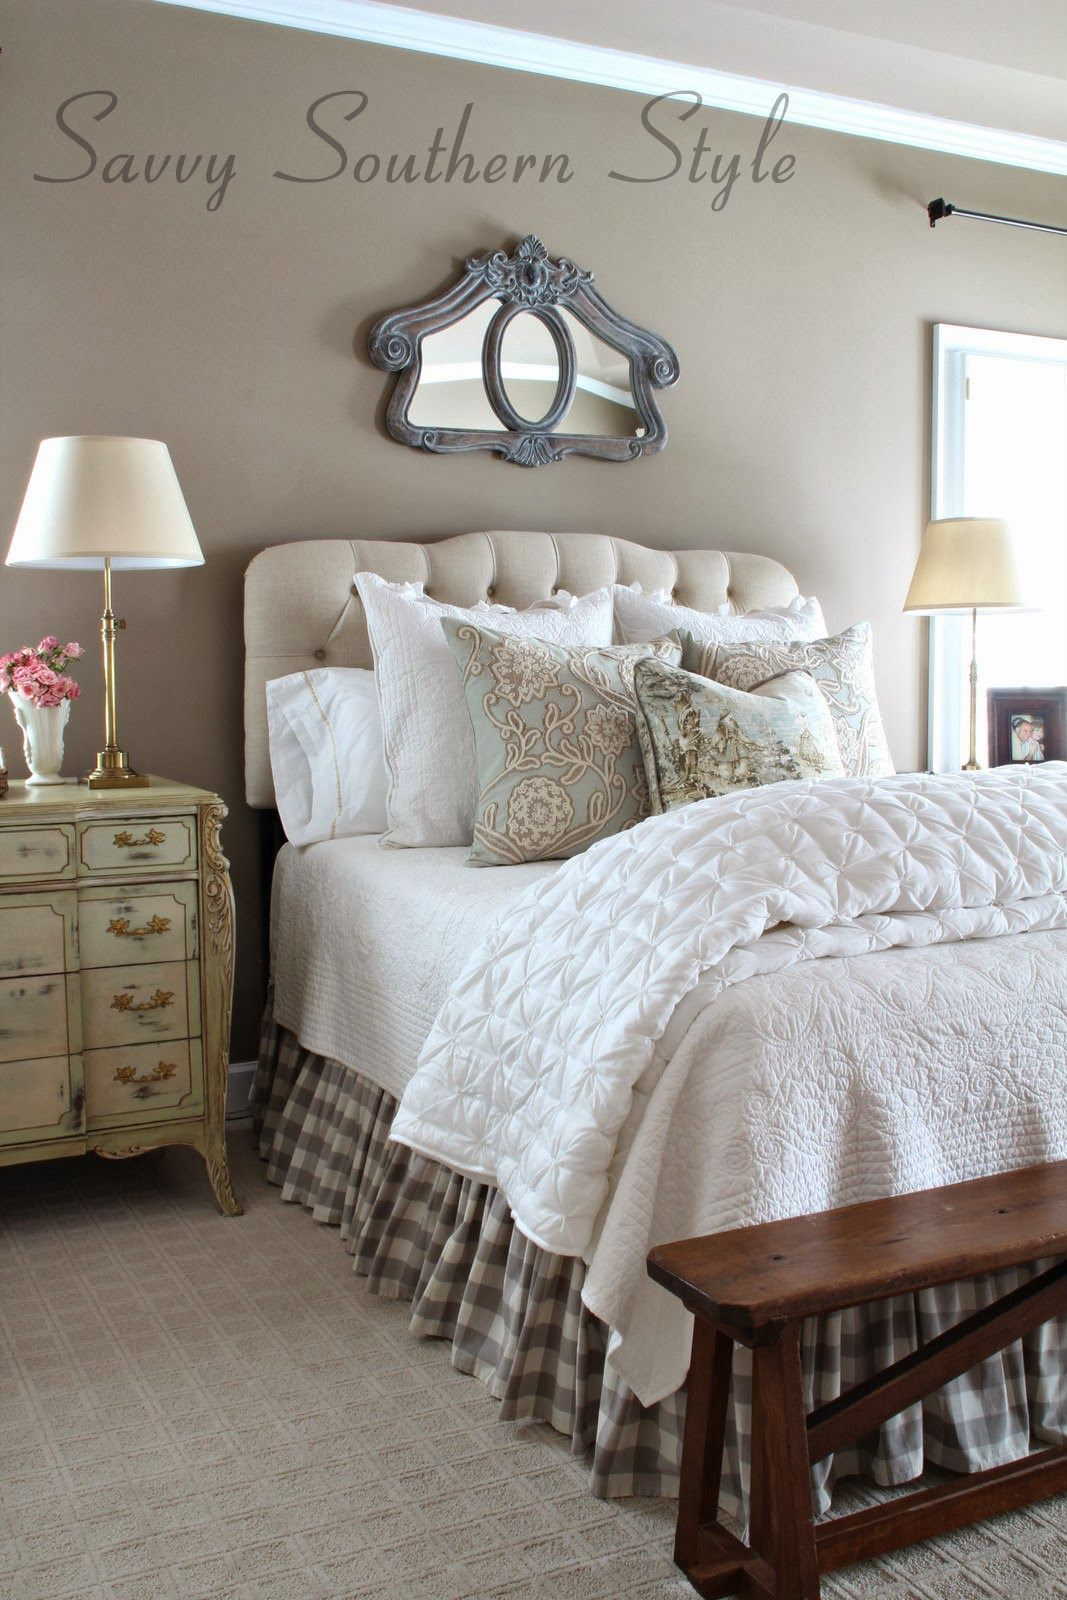 Savvy Southern Style Adding French Farmhouse Style In The